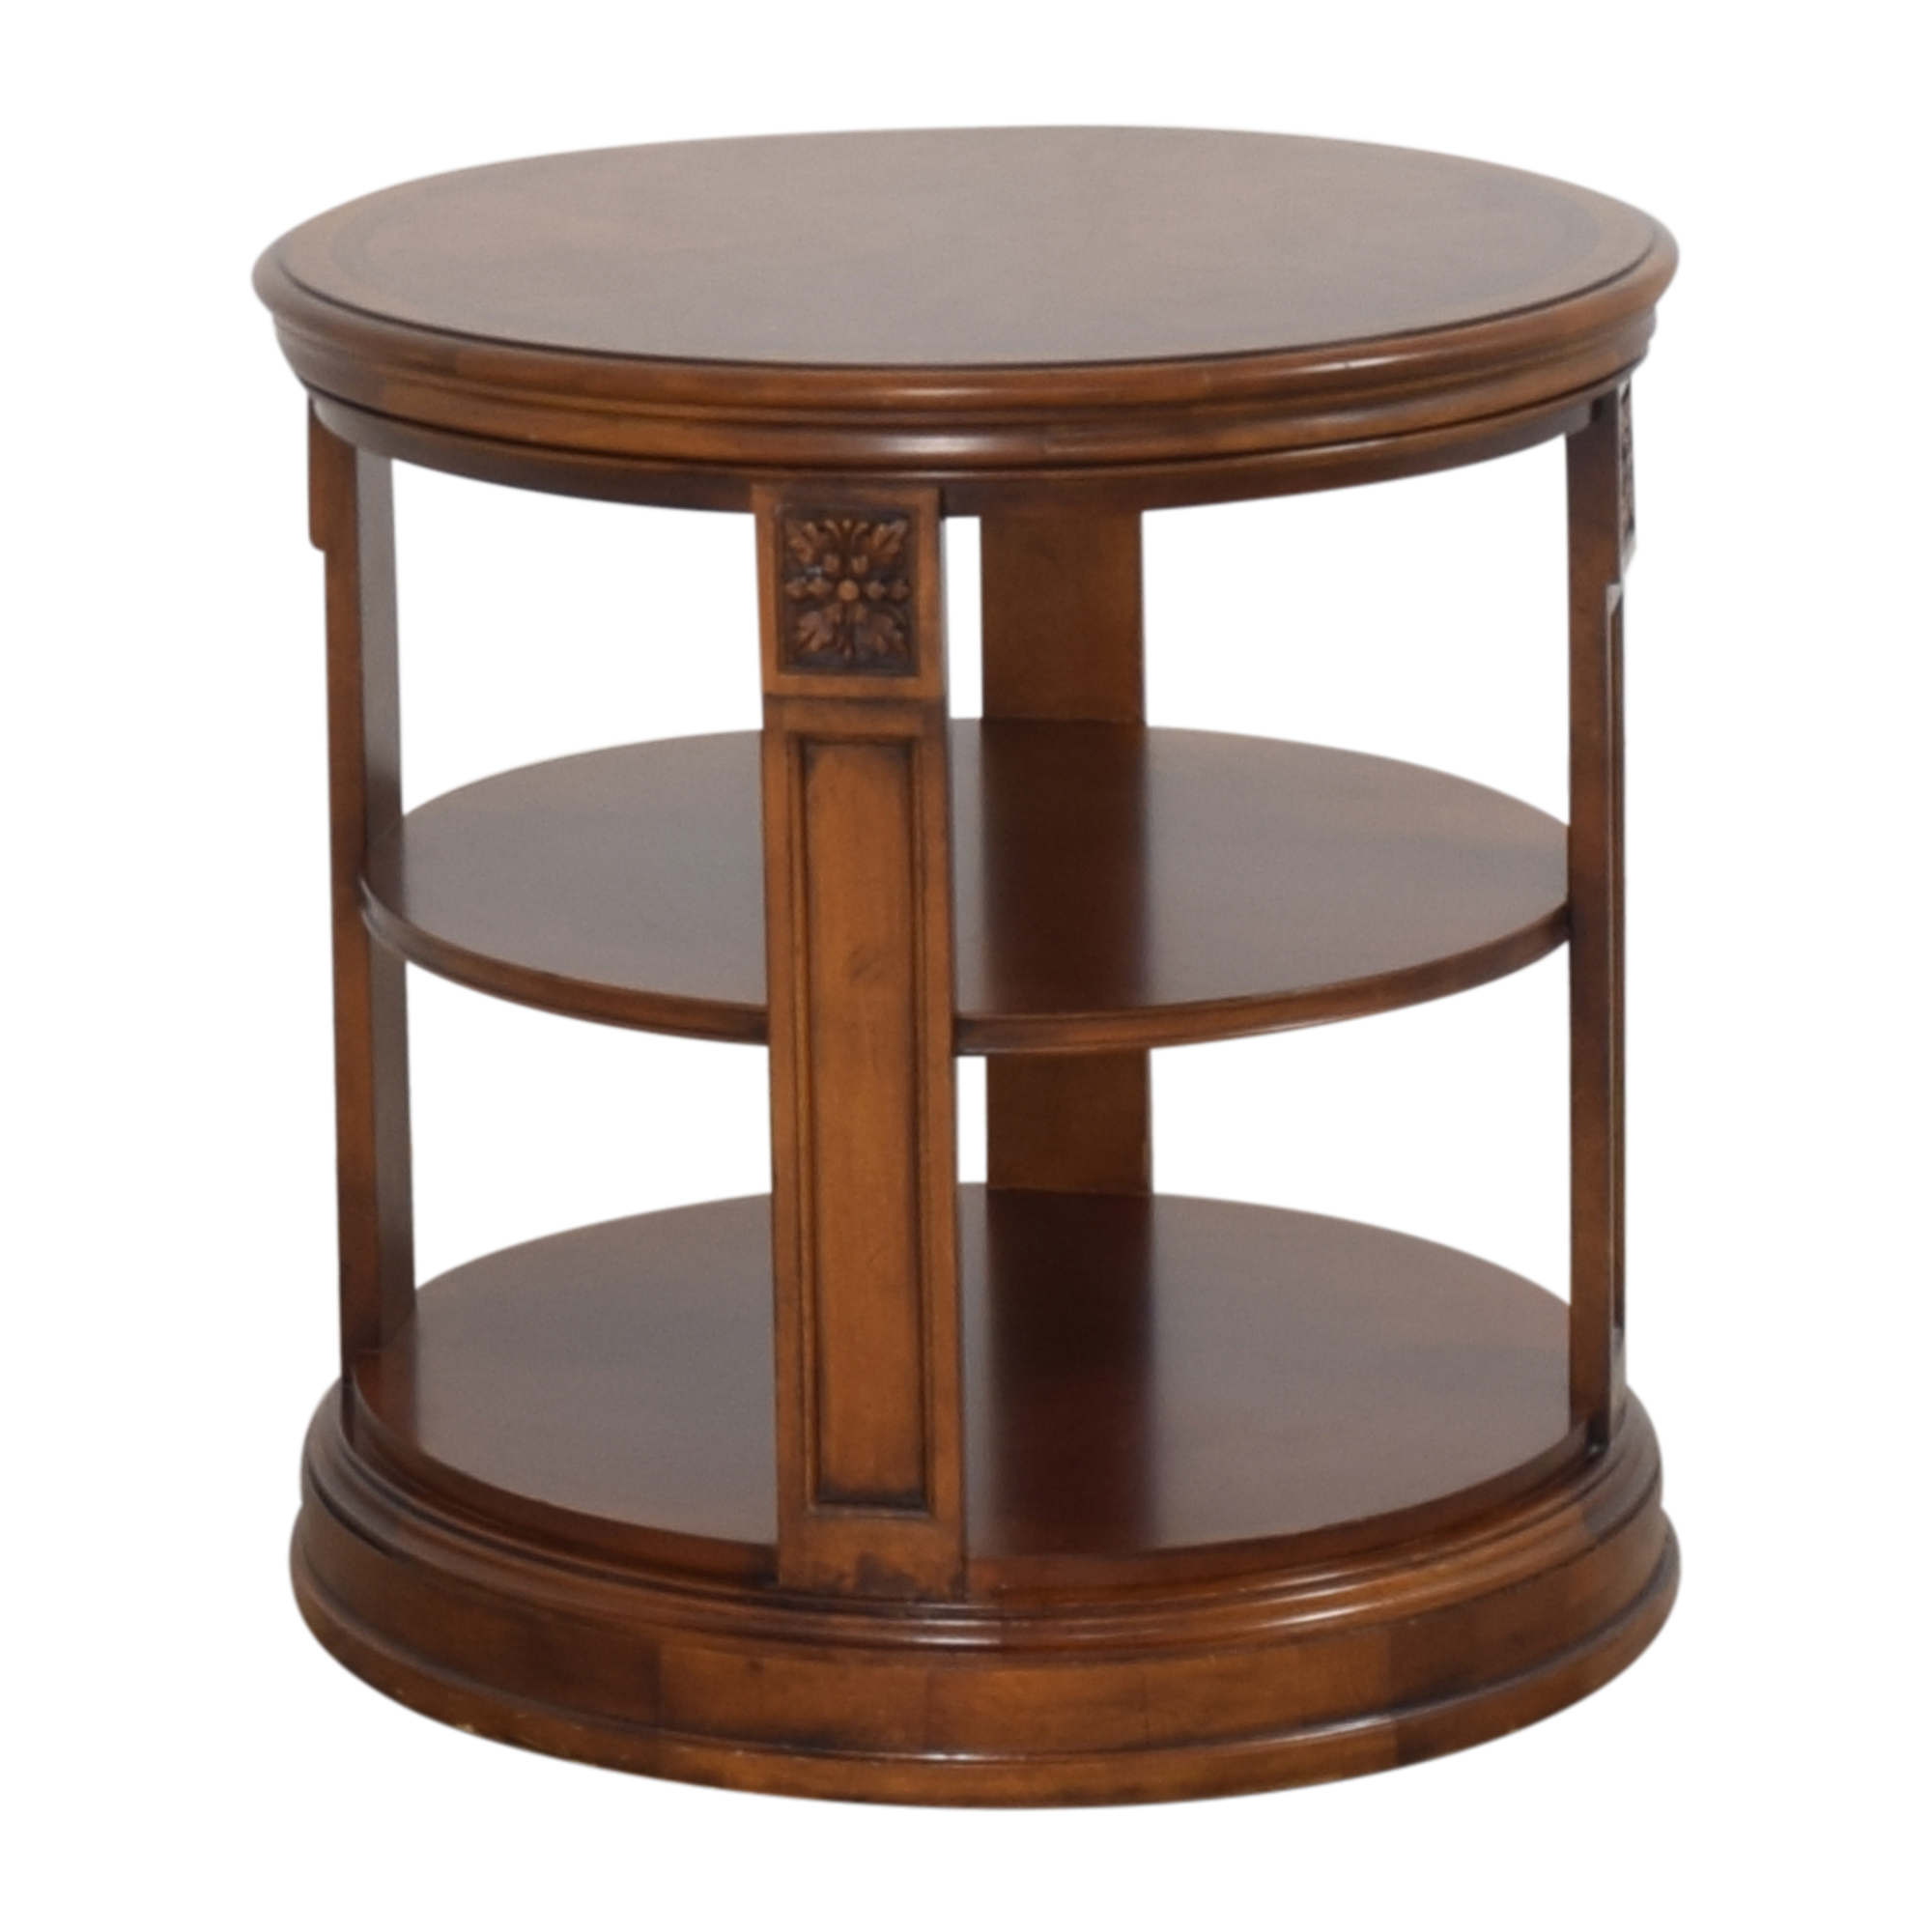 Ethan Allen Ethan Allen Seaver Library Table used